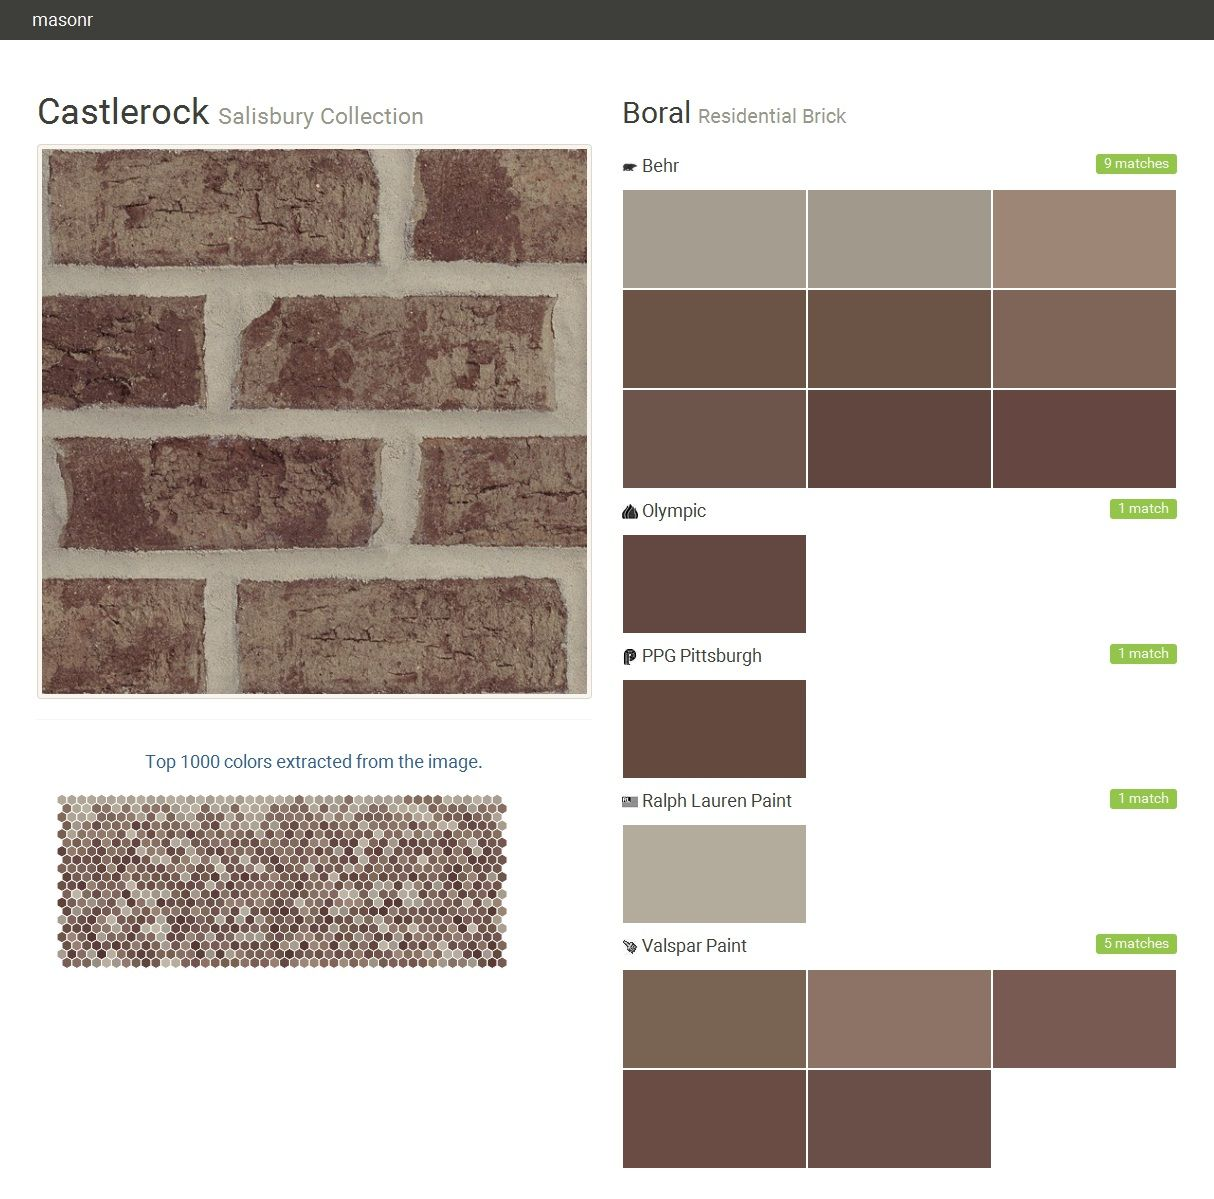 Ralph Lauren Paint Colors castlerock. salisbury collection. residential brick. boral. behr